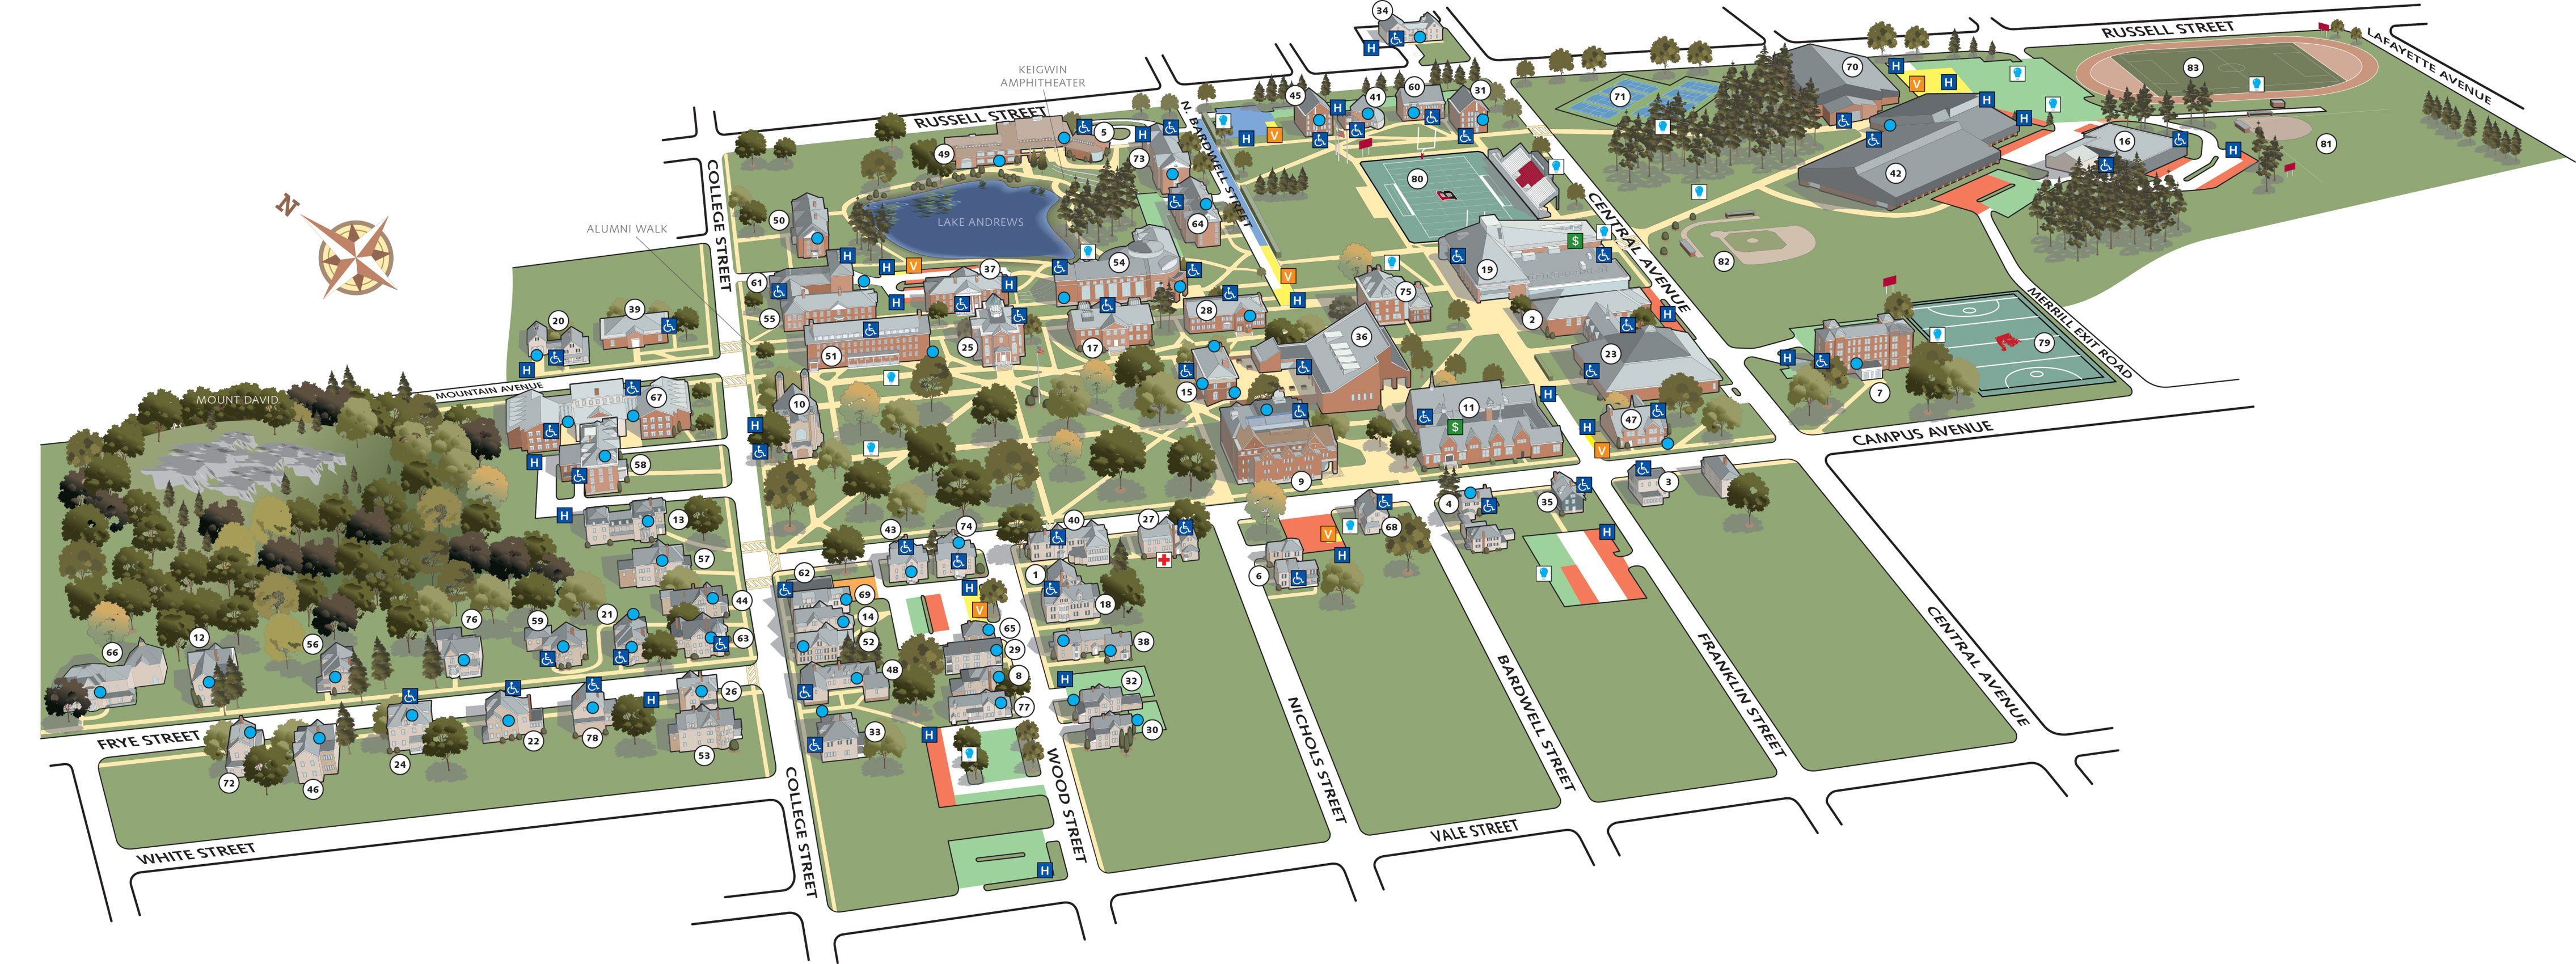 Auburn University Campus Map Auburn University Campus Map Printable | Print this Map (PDF